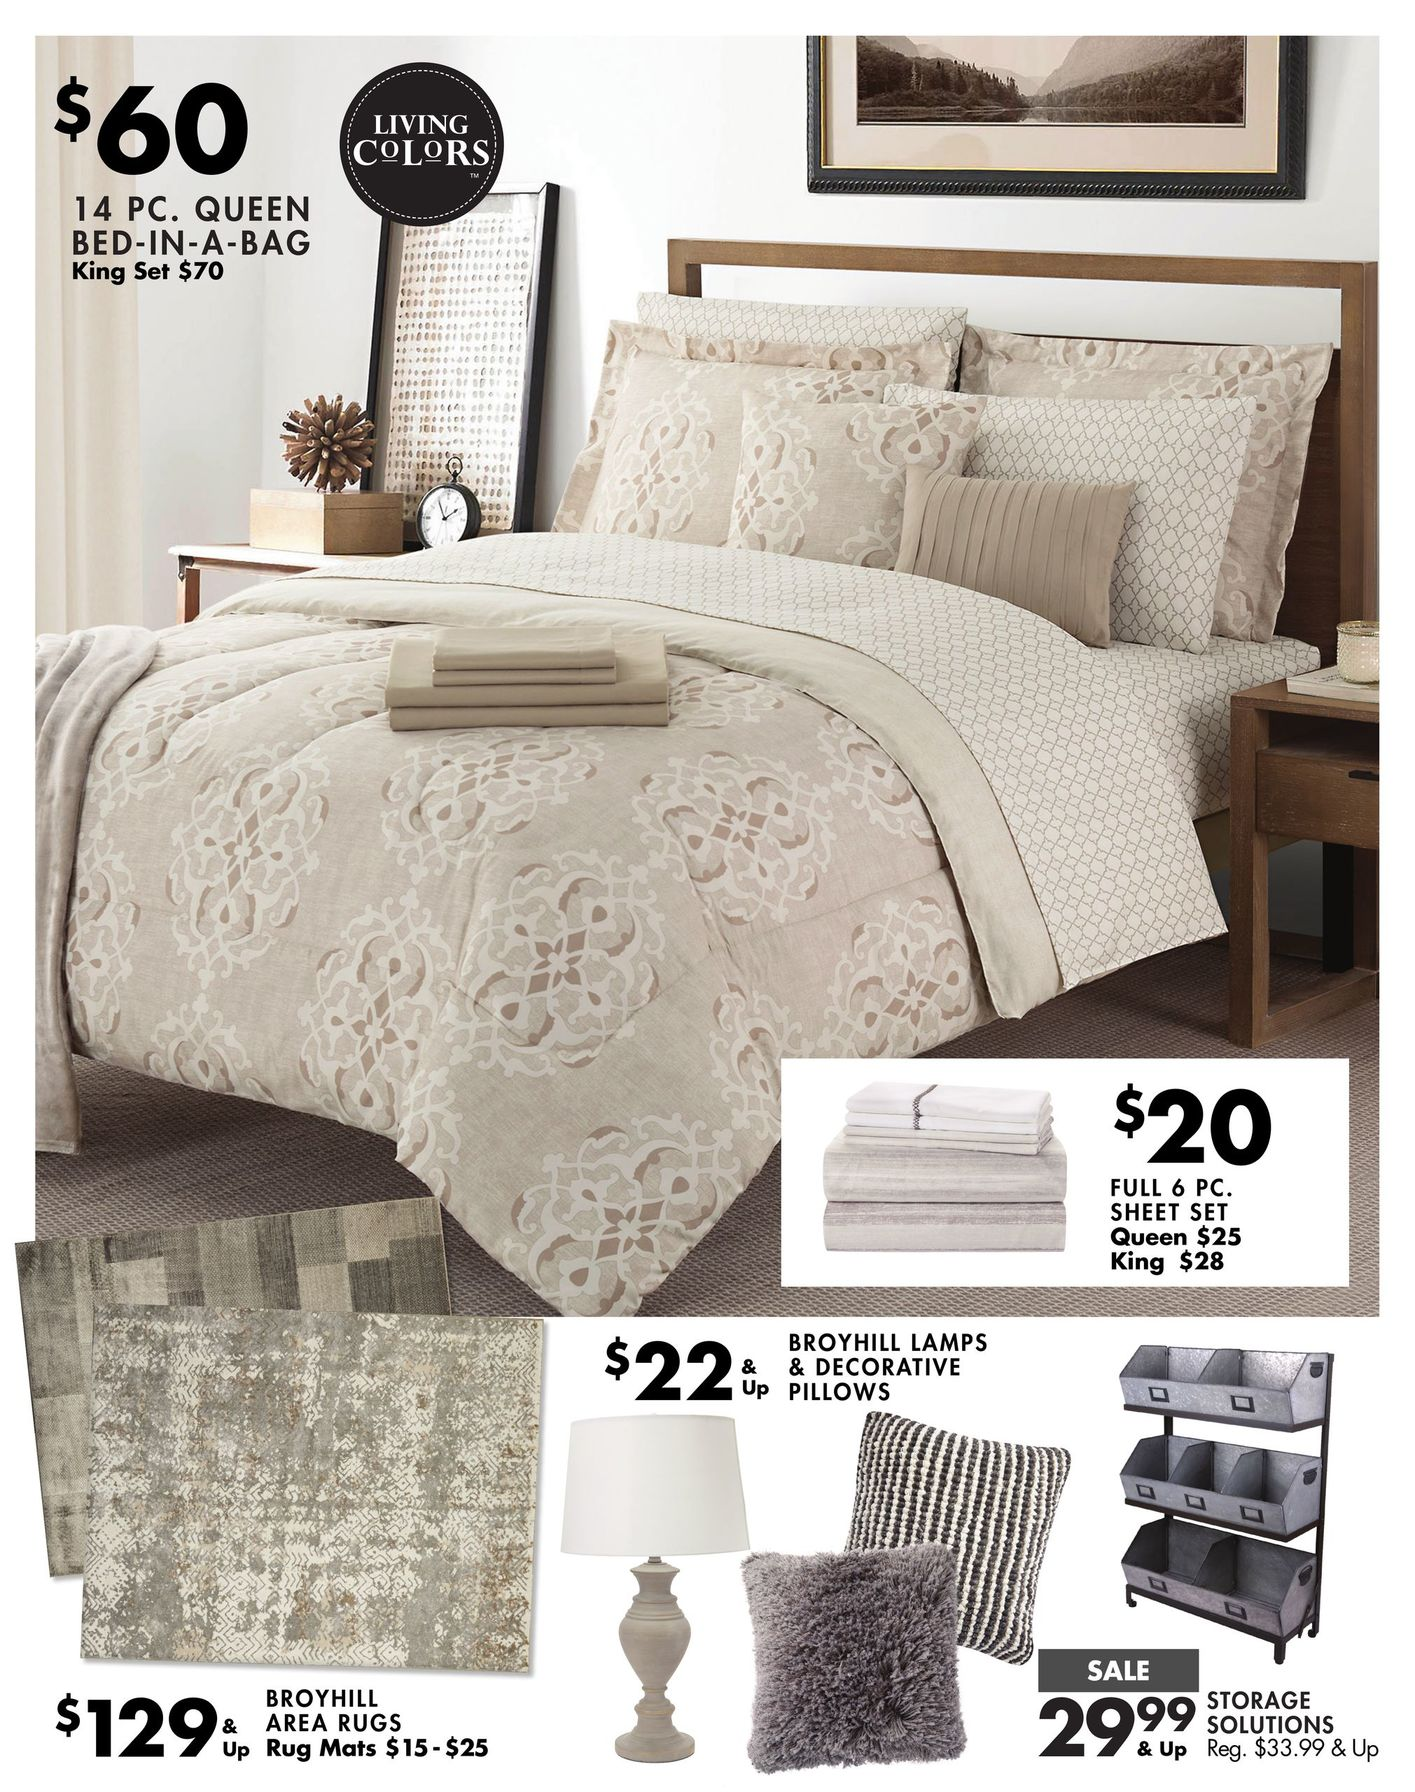 Big Lots Weekly February 22 - 29, 2020 Page 10